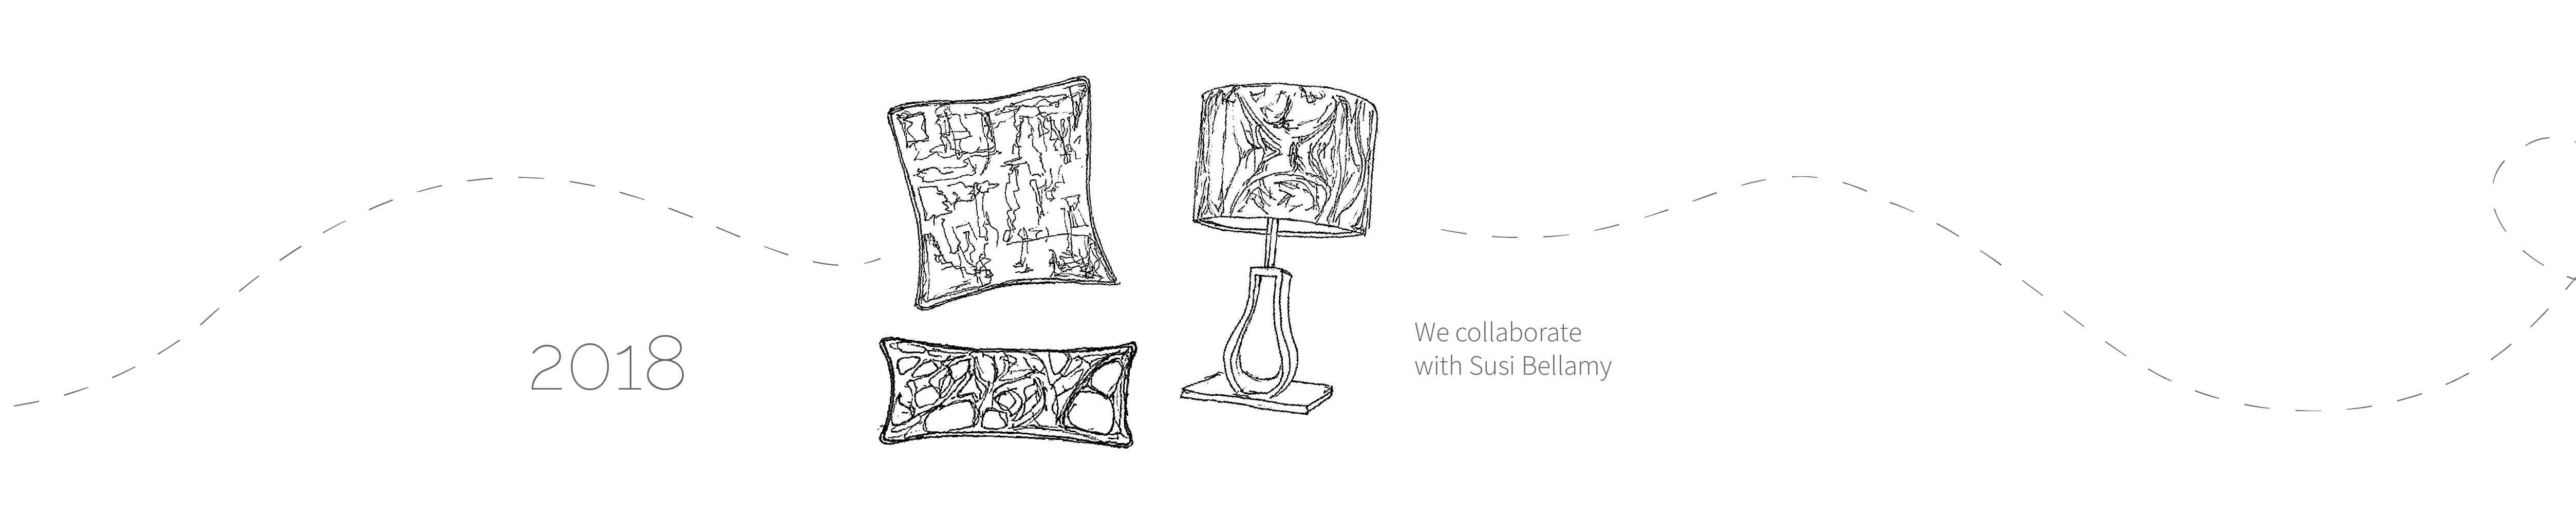 Read more about our Collaboration with Susi Bellamy